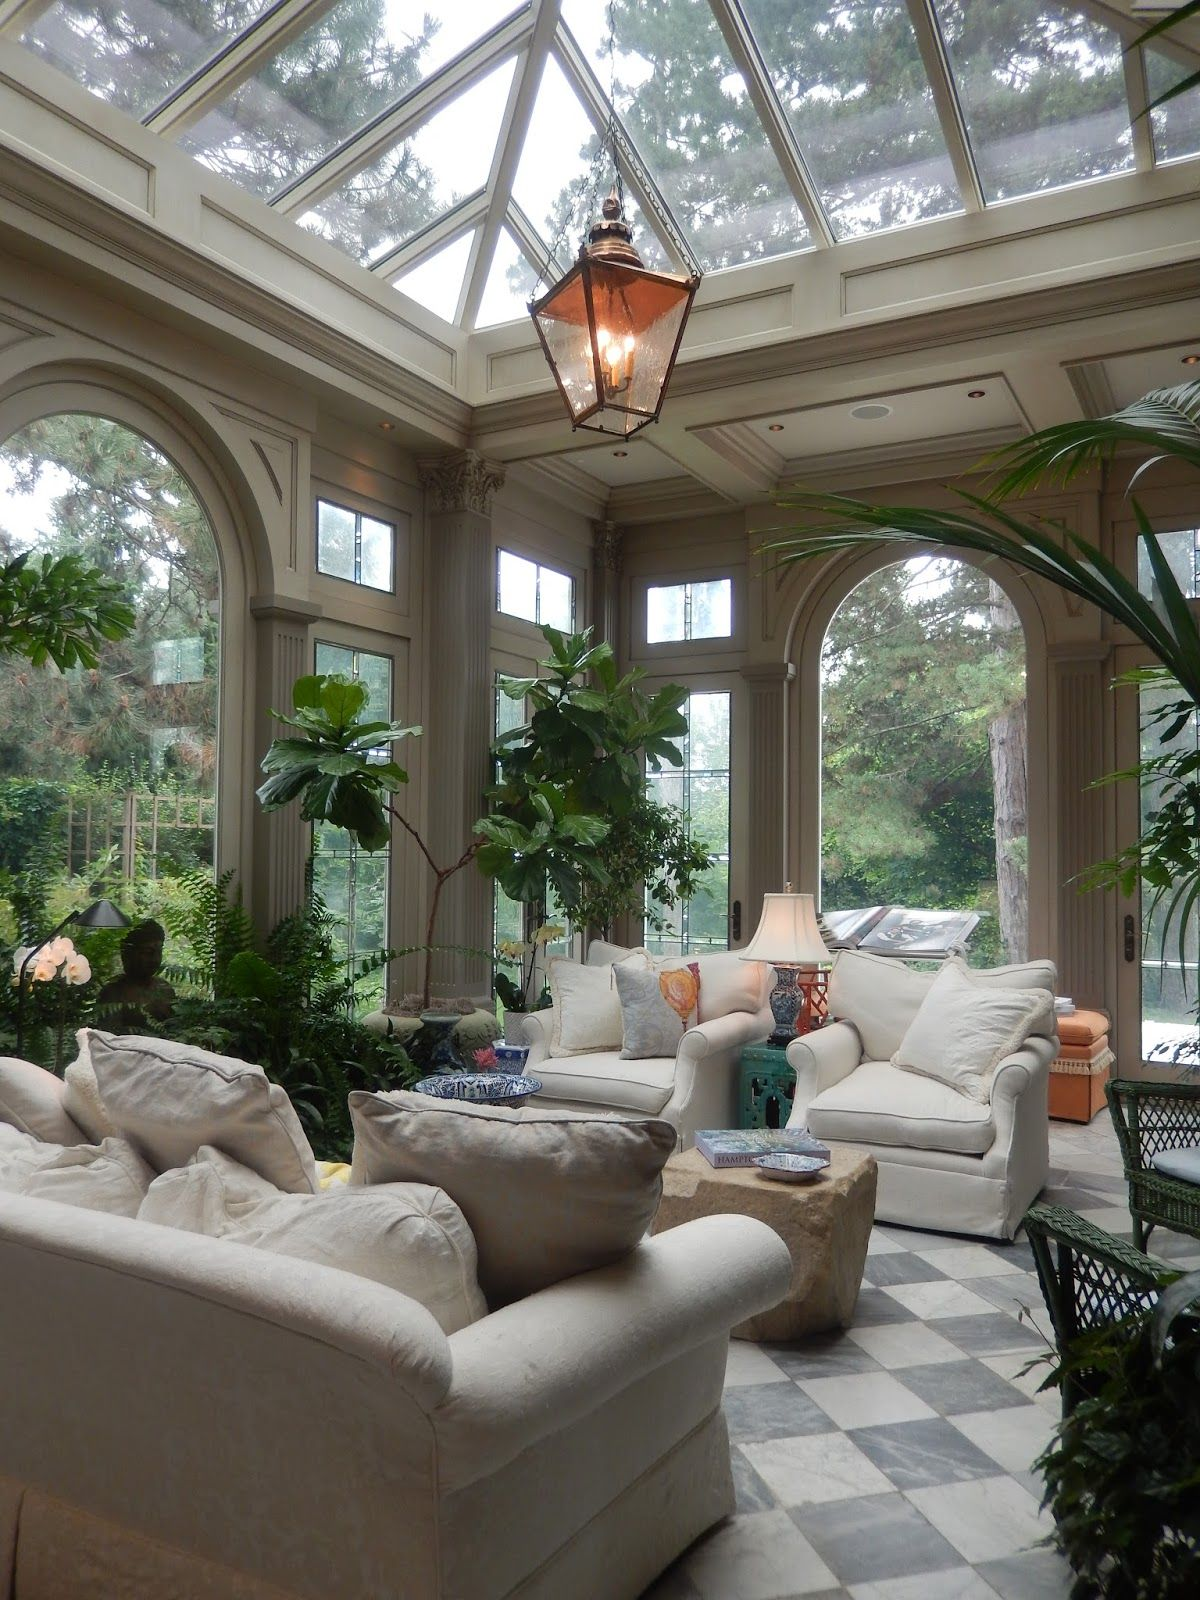 Best Of Sunroom Interior Design Ideas